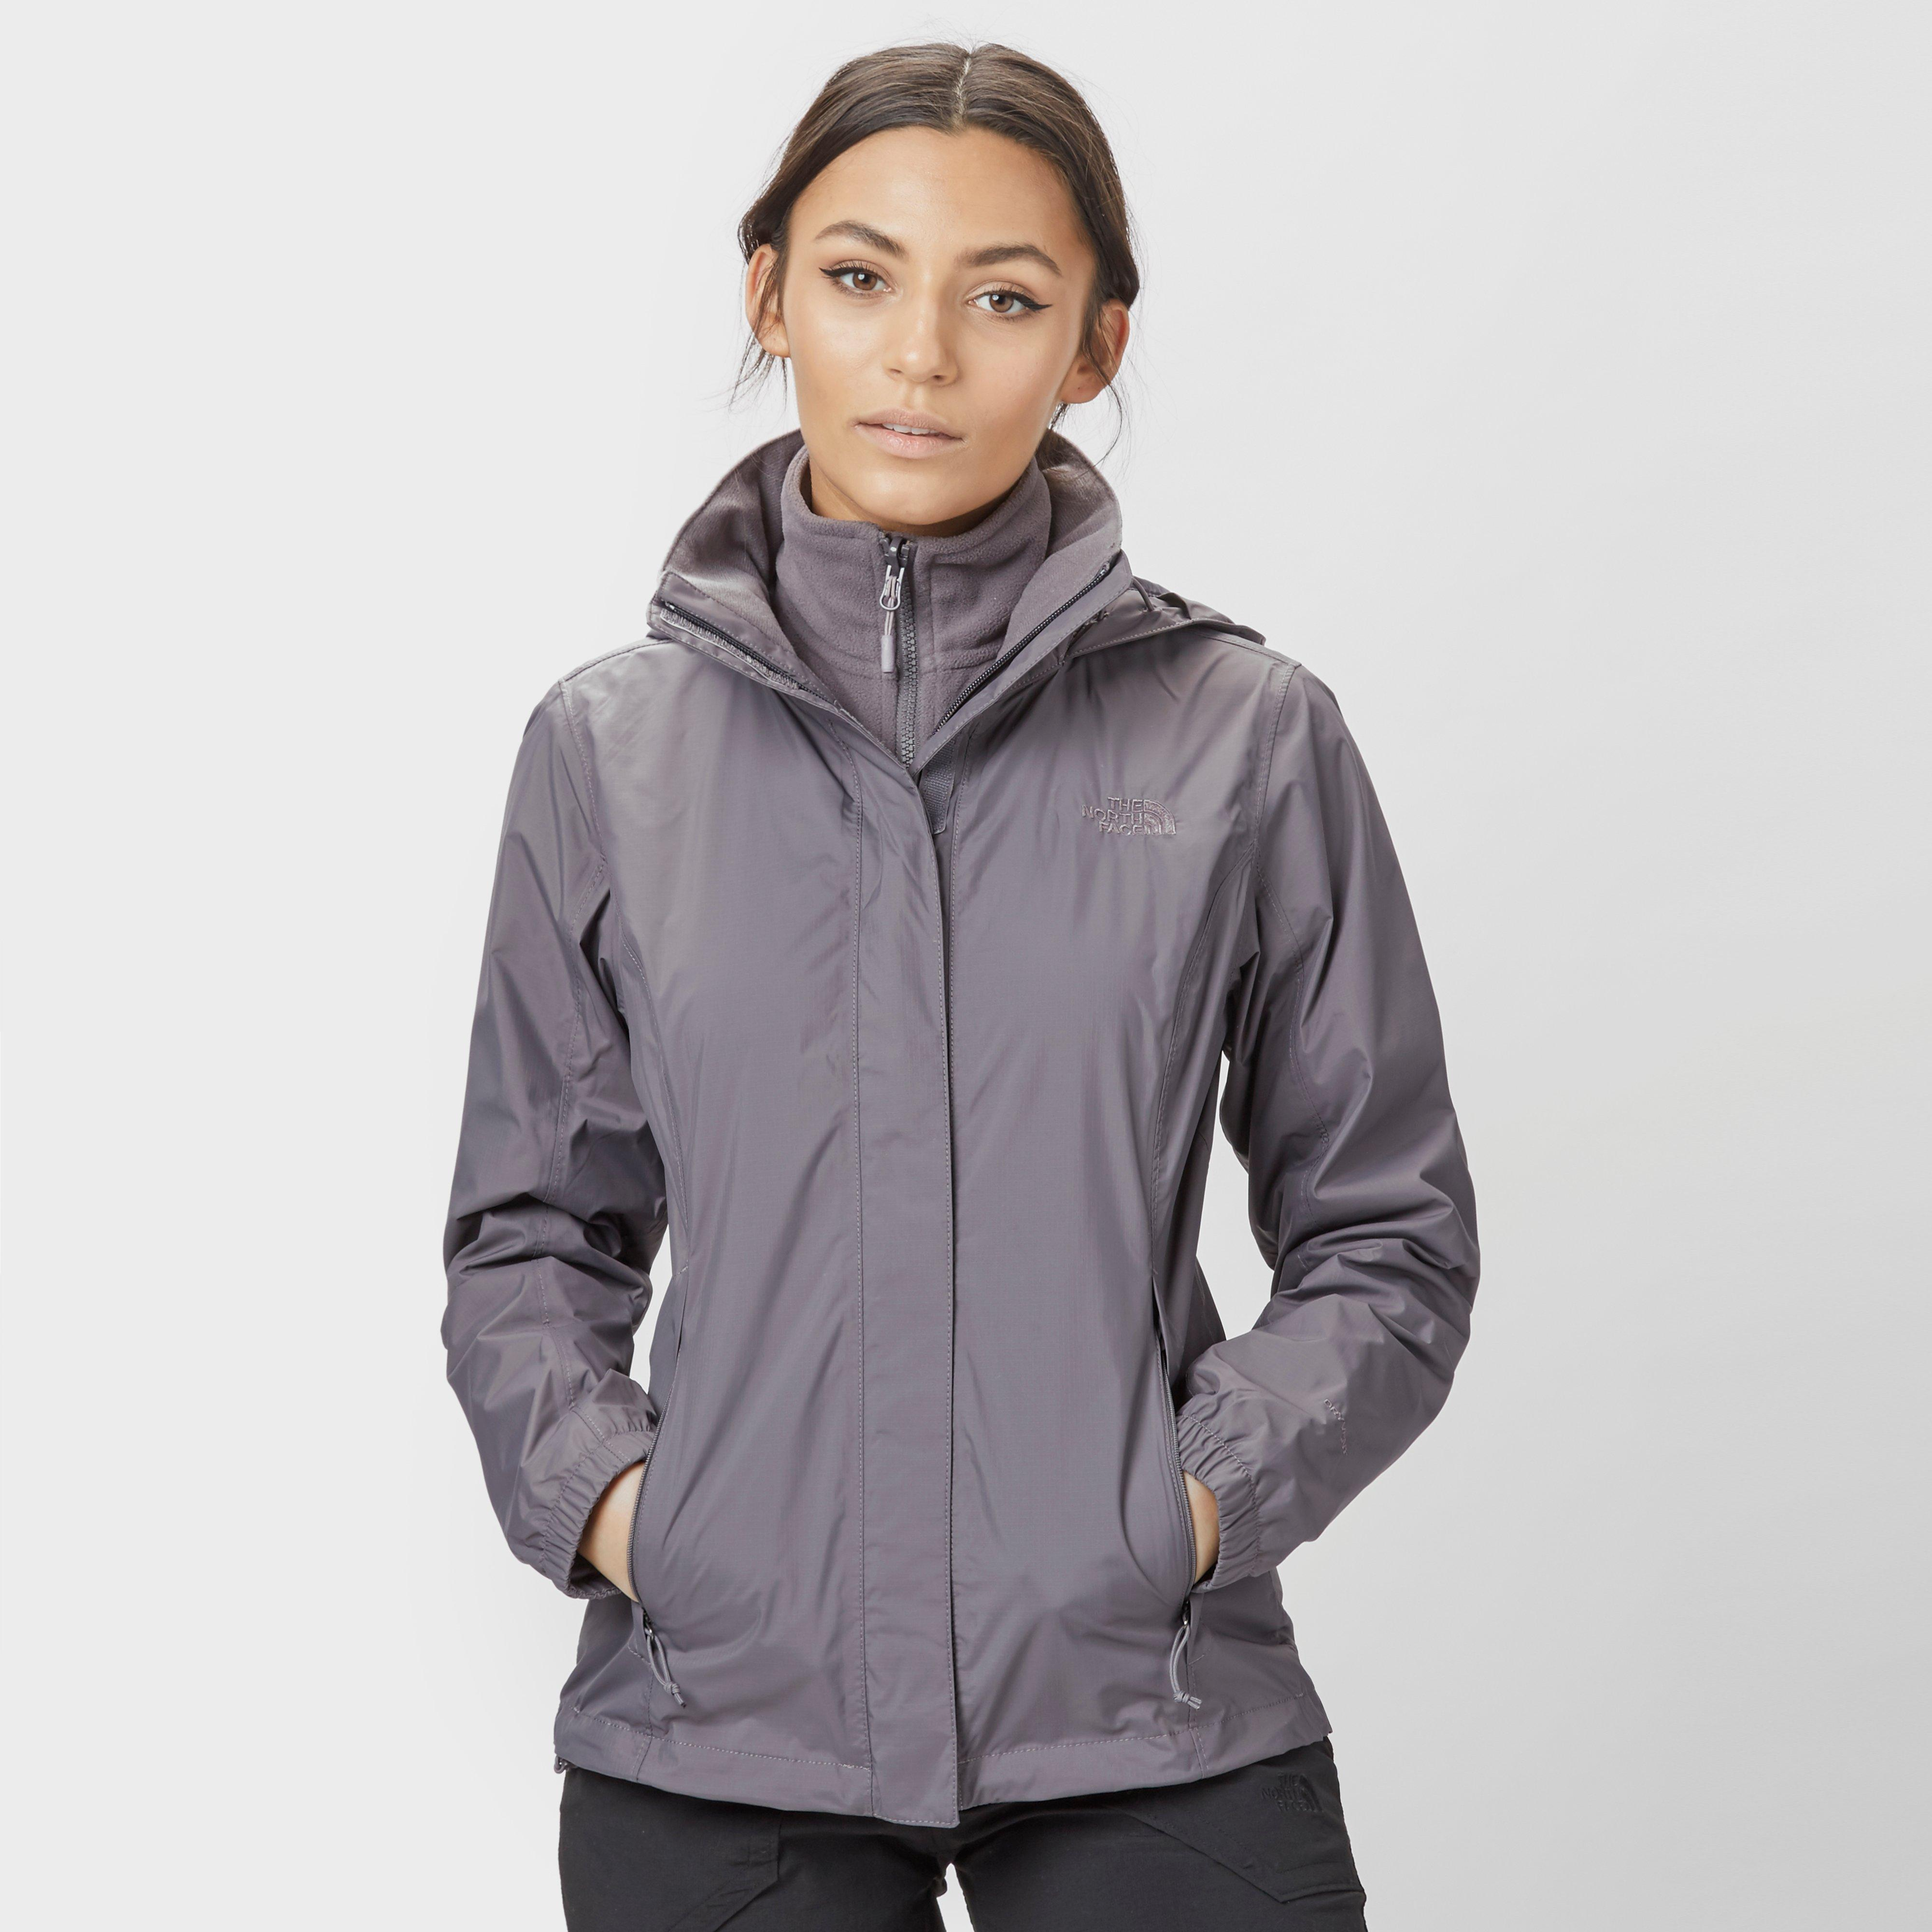 cfdff4e016cd The North Face Womens DryVent Resolve Jacket Grey